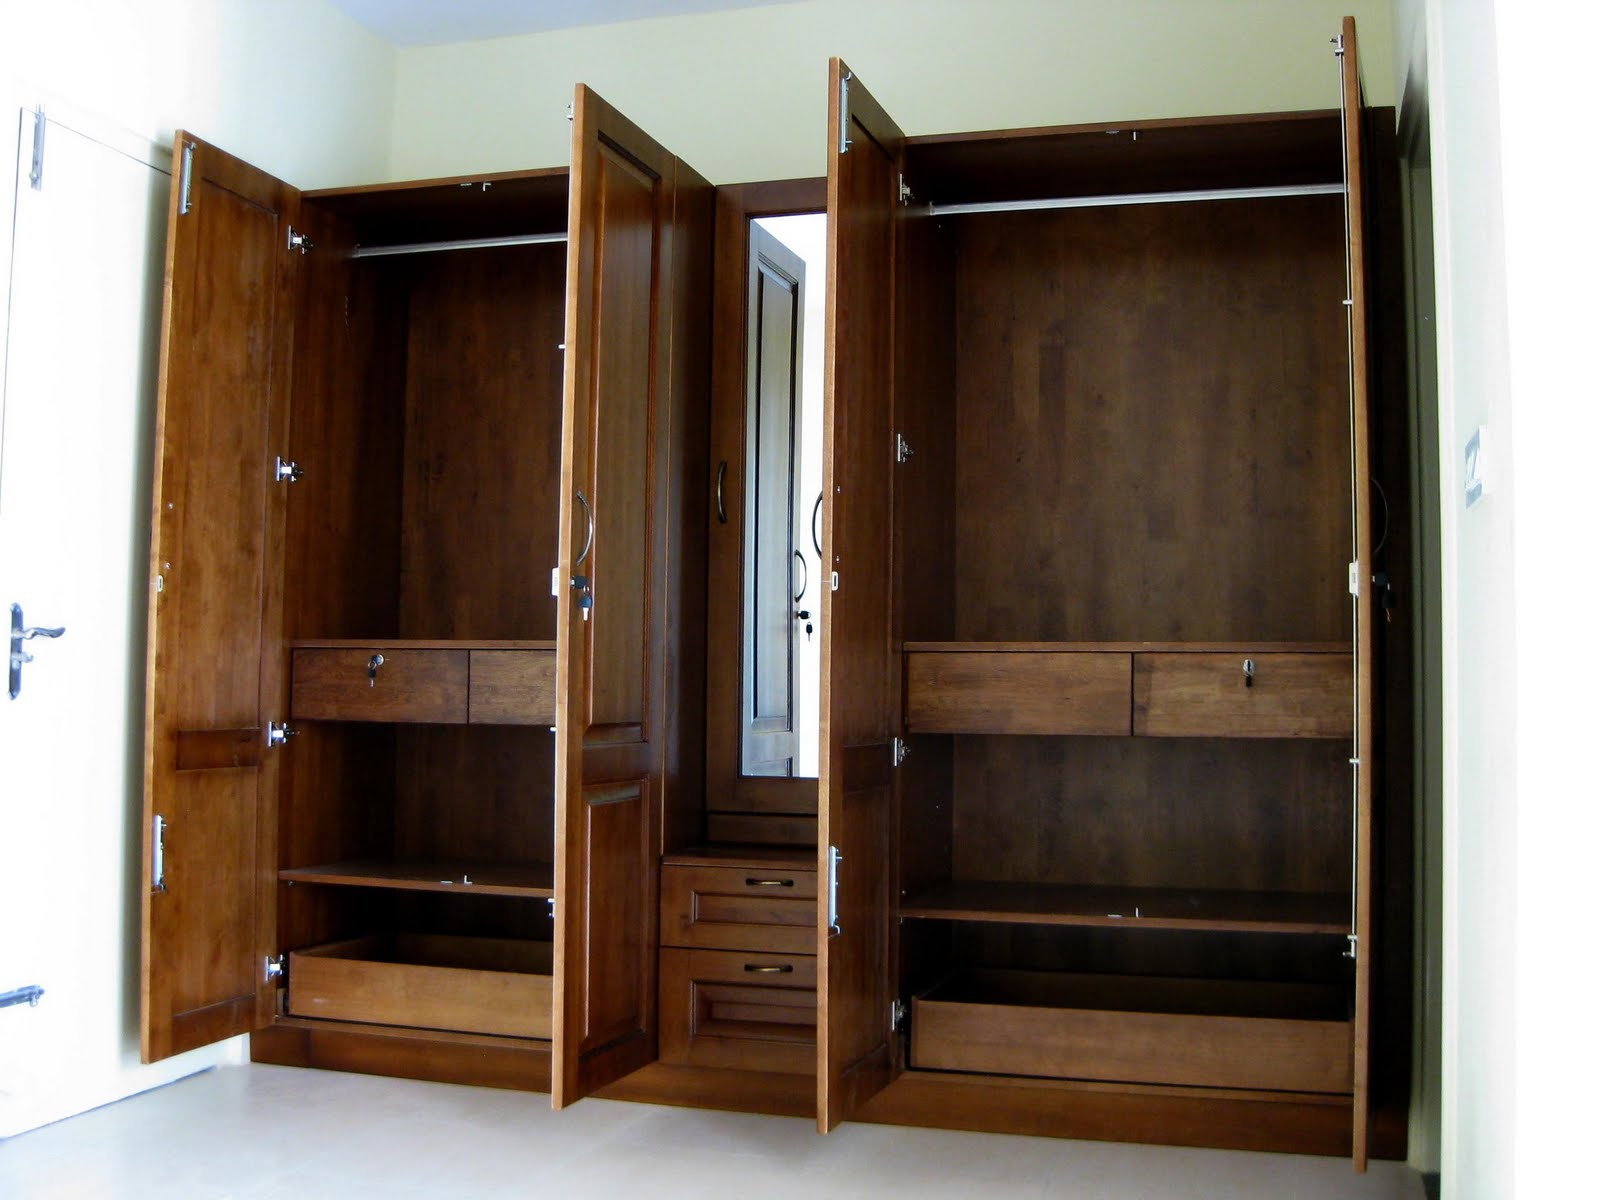 Marvelous Photograph Of Wardrobe With Tall Mirror And Dressing Table(full  Height Shutters).